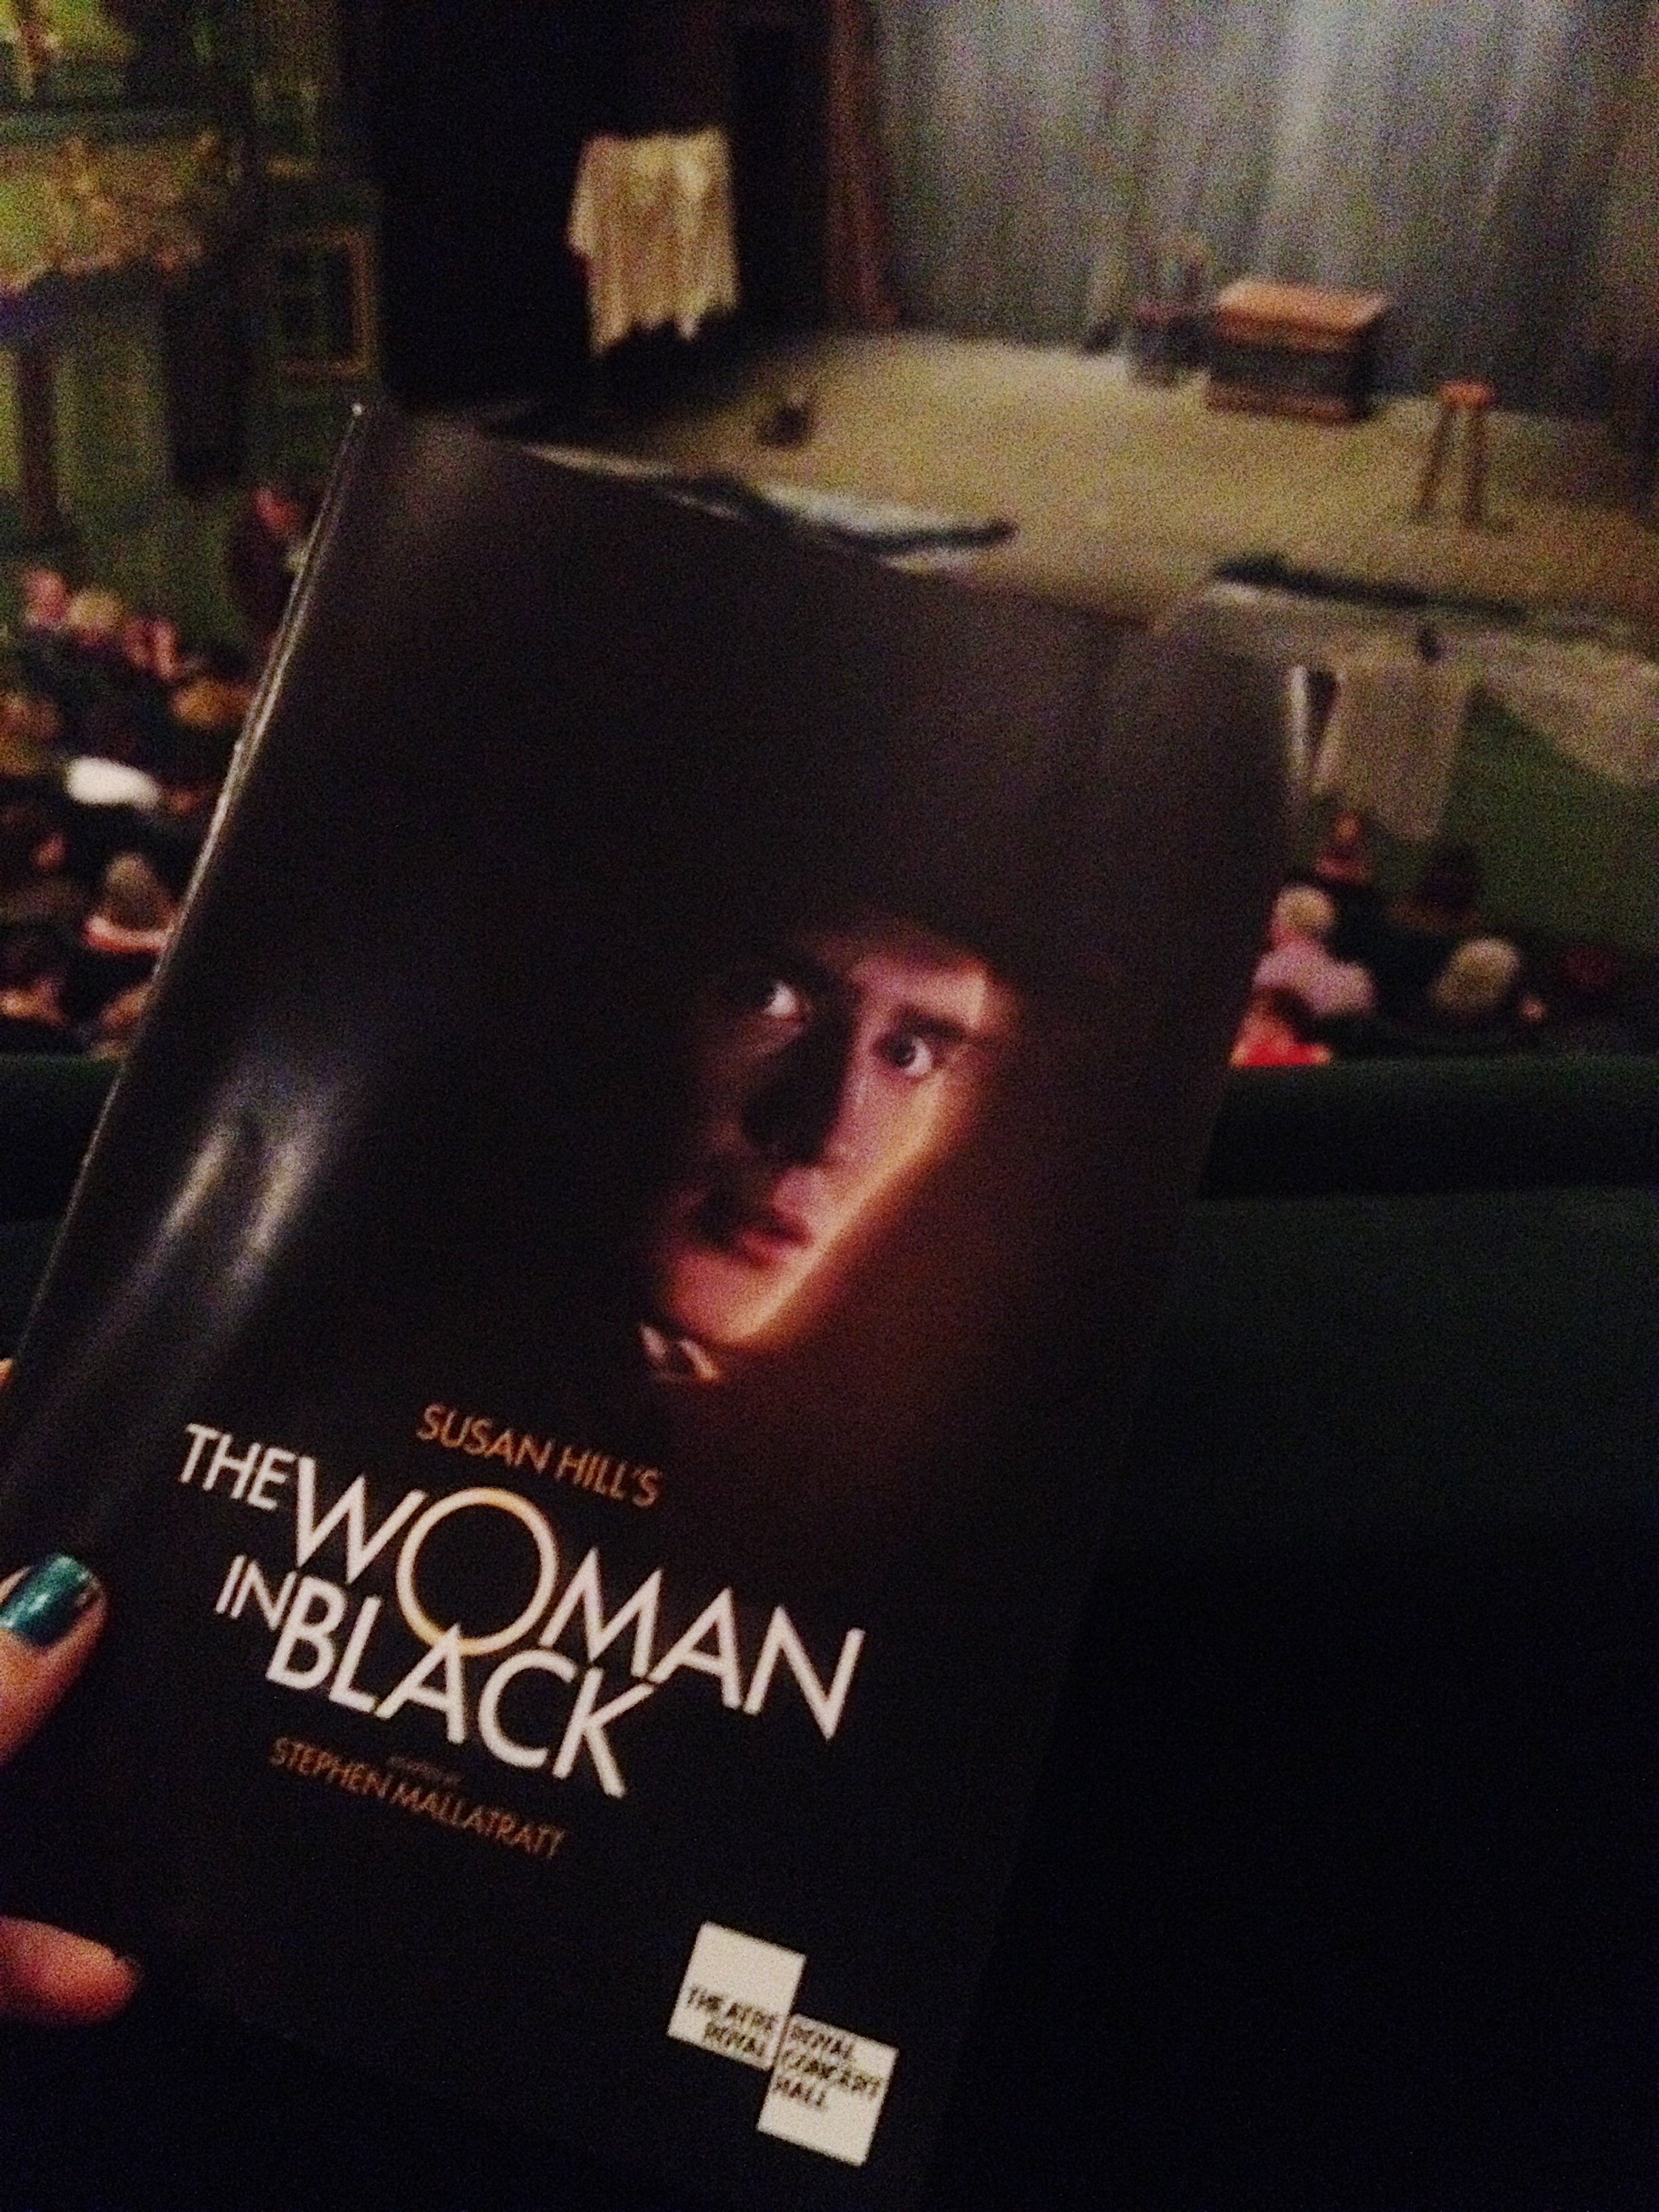 Theatre Review: The Woman In Black @ Theatre Royal, Nottingham